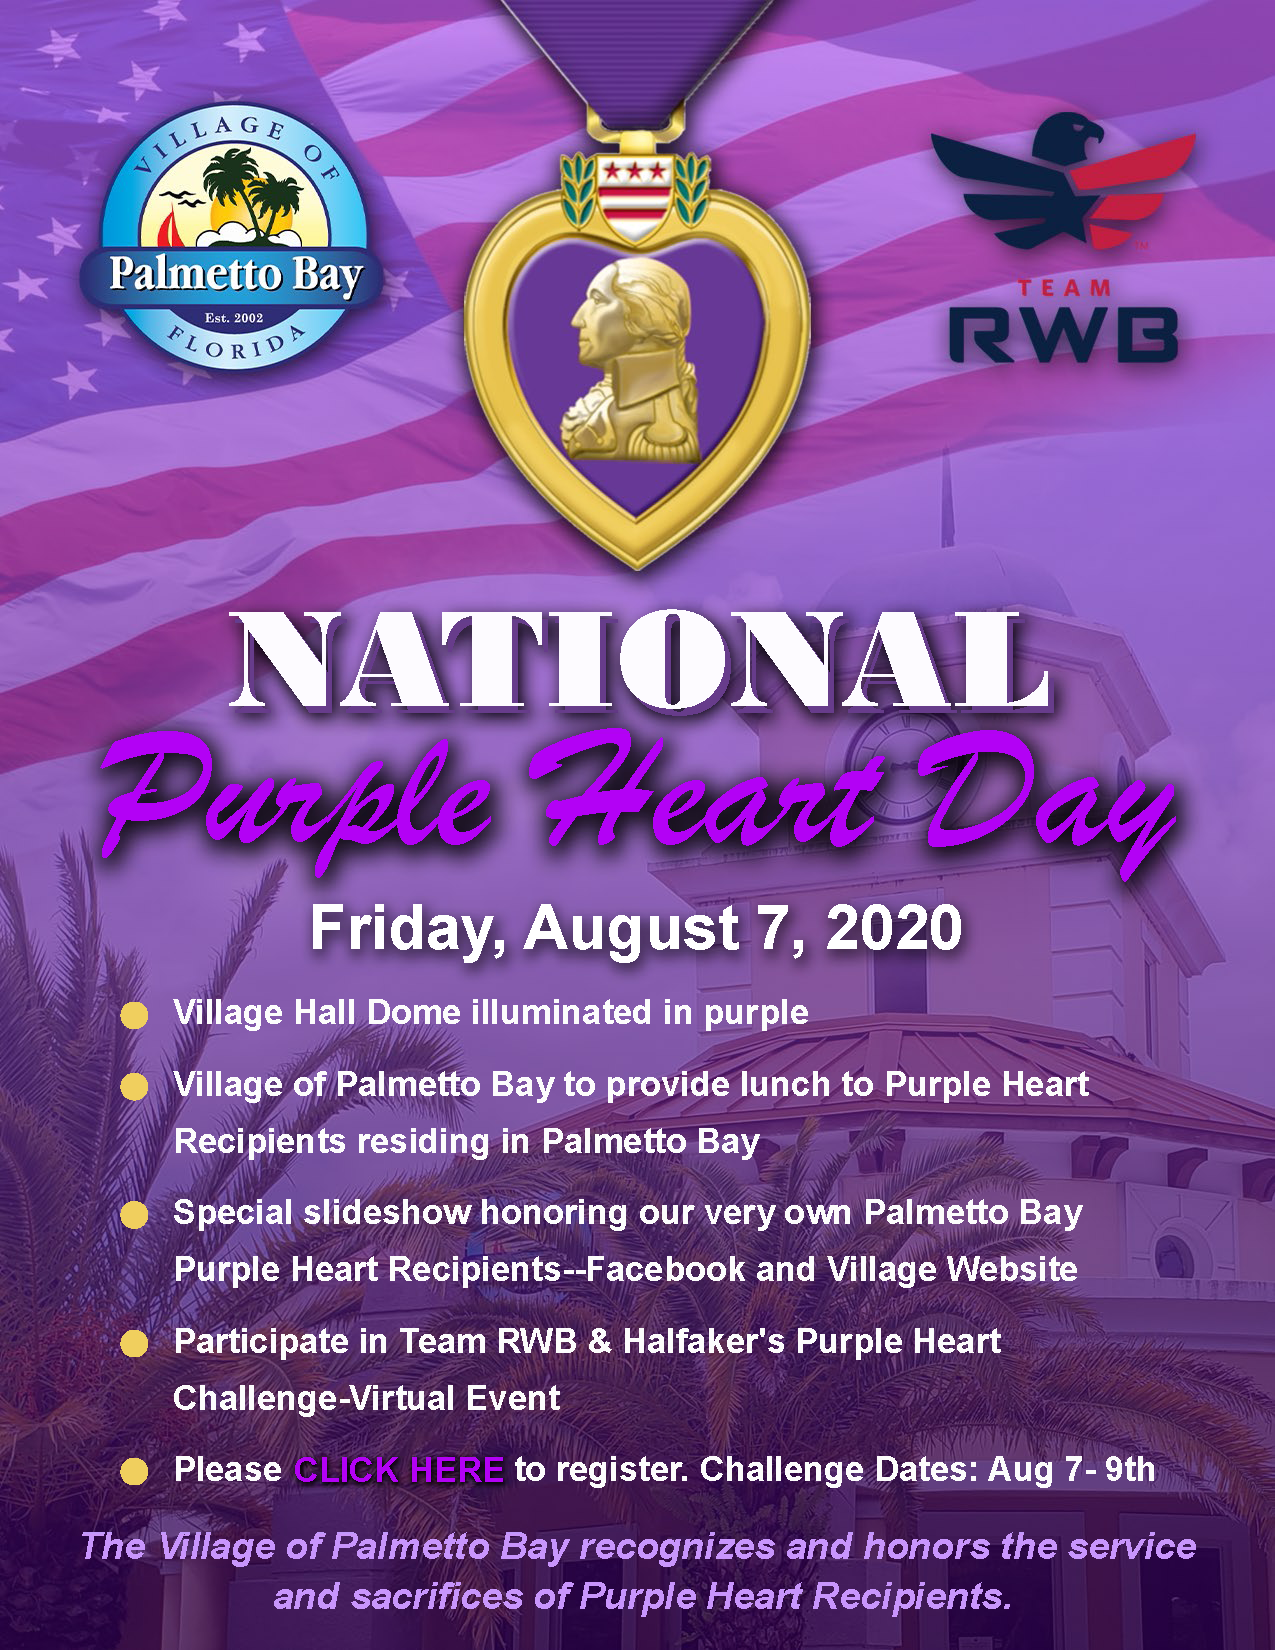 National_Purple_Heart_Day_2020